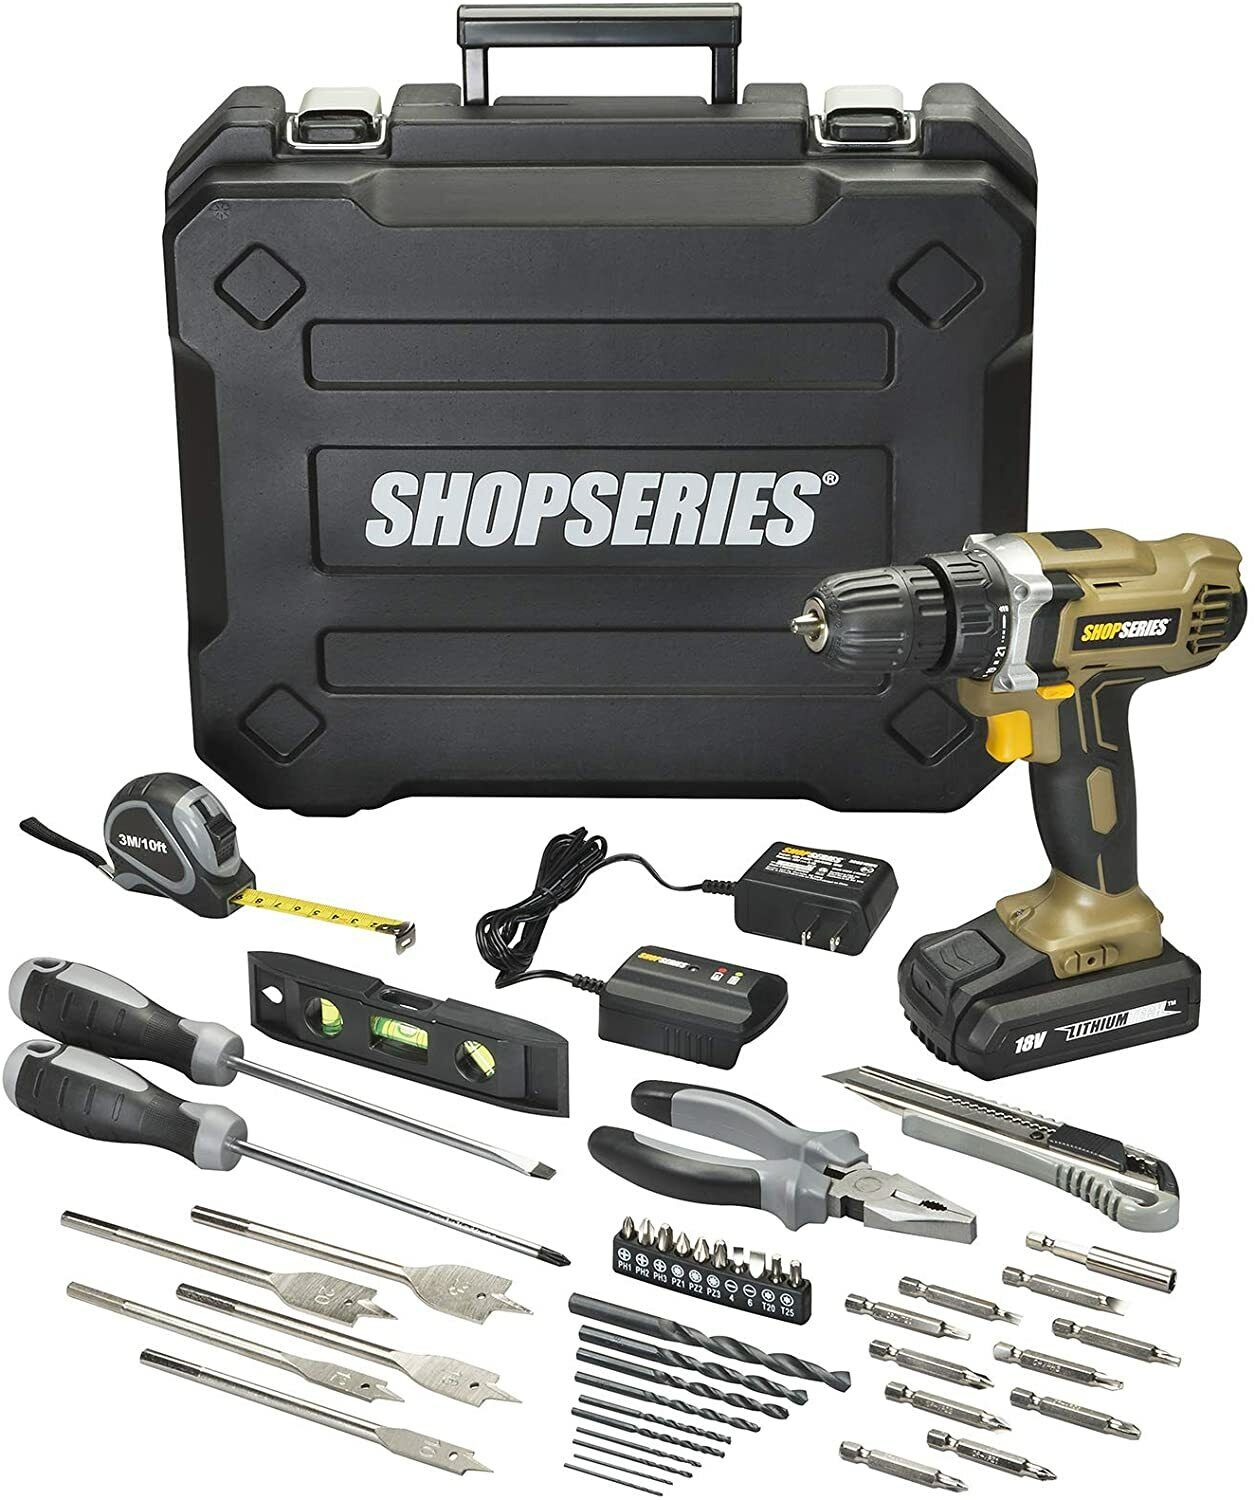 Rockwell SS2811K.1 ShopSeries 18 V Lithiumion 38 Drill Driver Value Kit